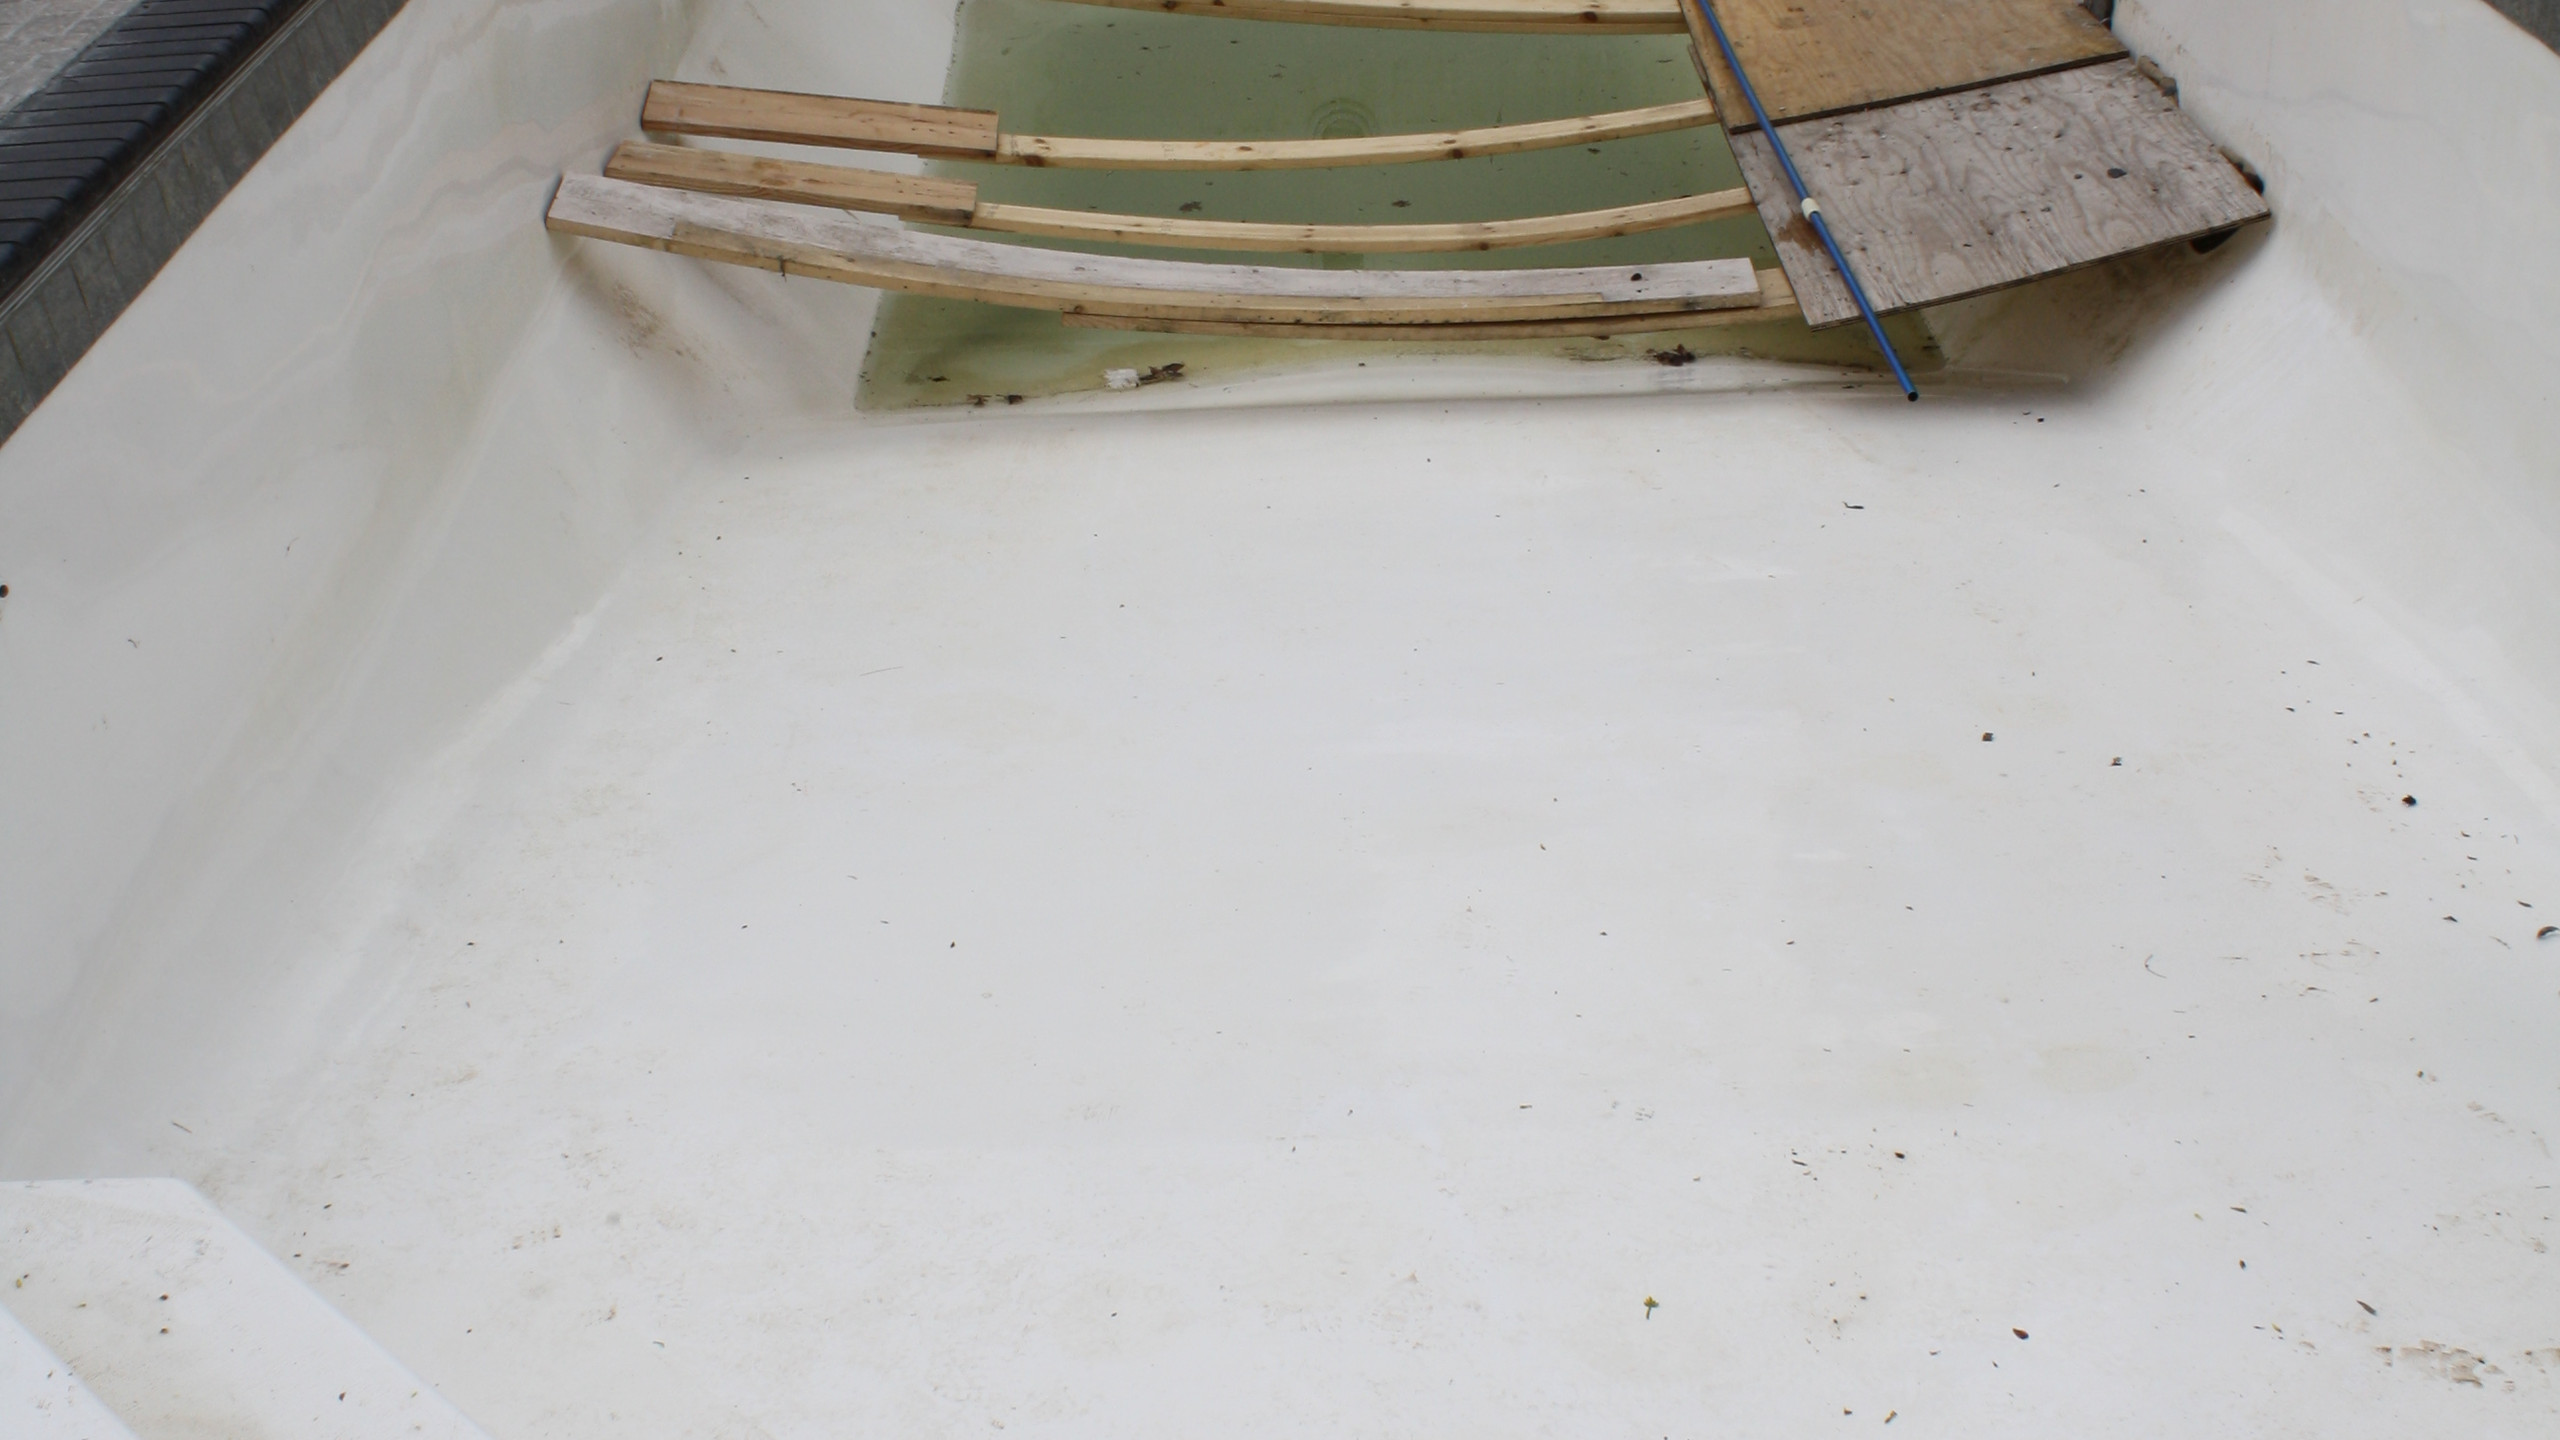 This fiberglass pool built by Siesta Creations in Algoma WI was severely damaged for 2 reasons. There was a high water table with no way to pump out ground water and an inexperienced Service Tech from Premiere Pool Service in Denmark WI drained the pool. The pool was backfilled with sand so when the water was removed formthe pool the sand on the sides of hte pool liquifide and began heaving on the pool. The liguifide sand cause a large 8' long buckle and crack down the floor of the pool.